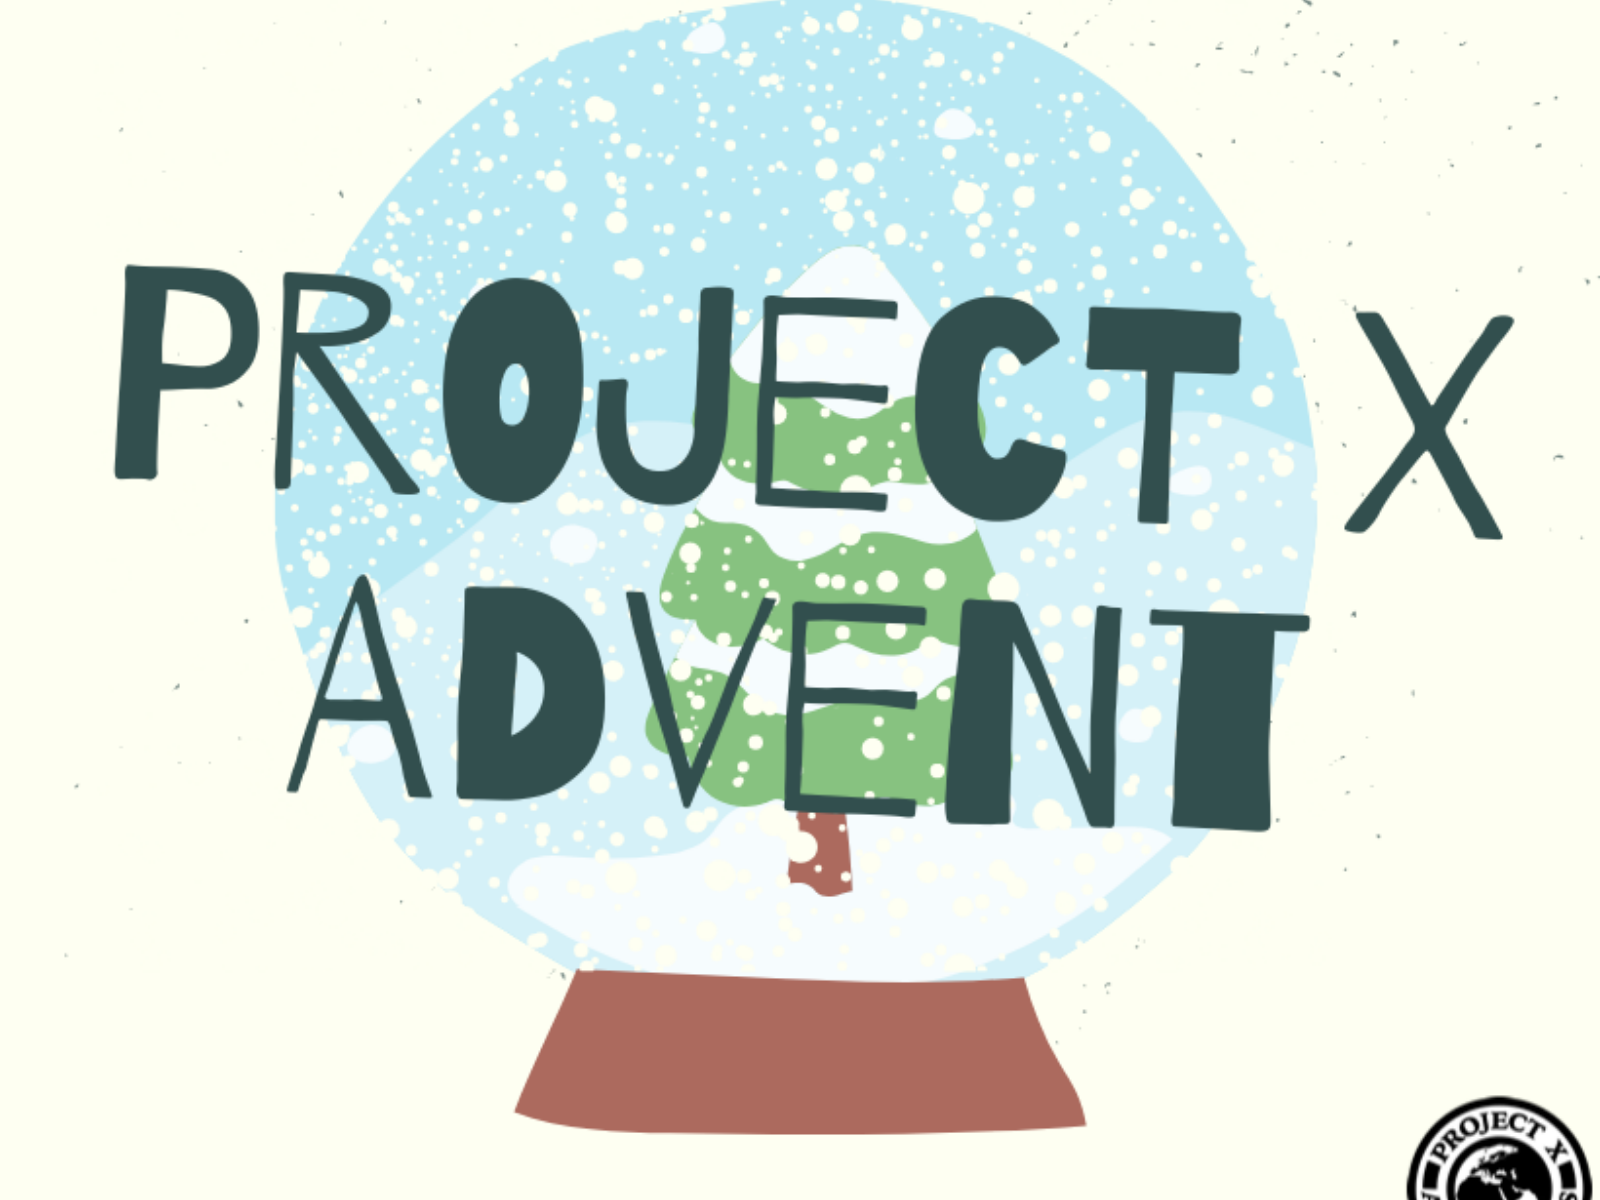 Project X Advent Calendar 2019